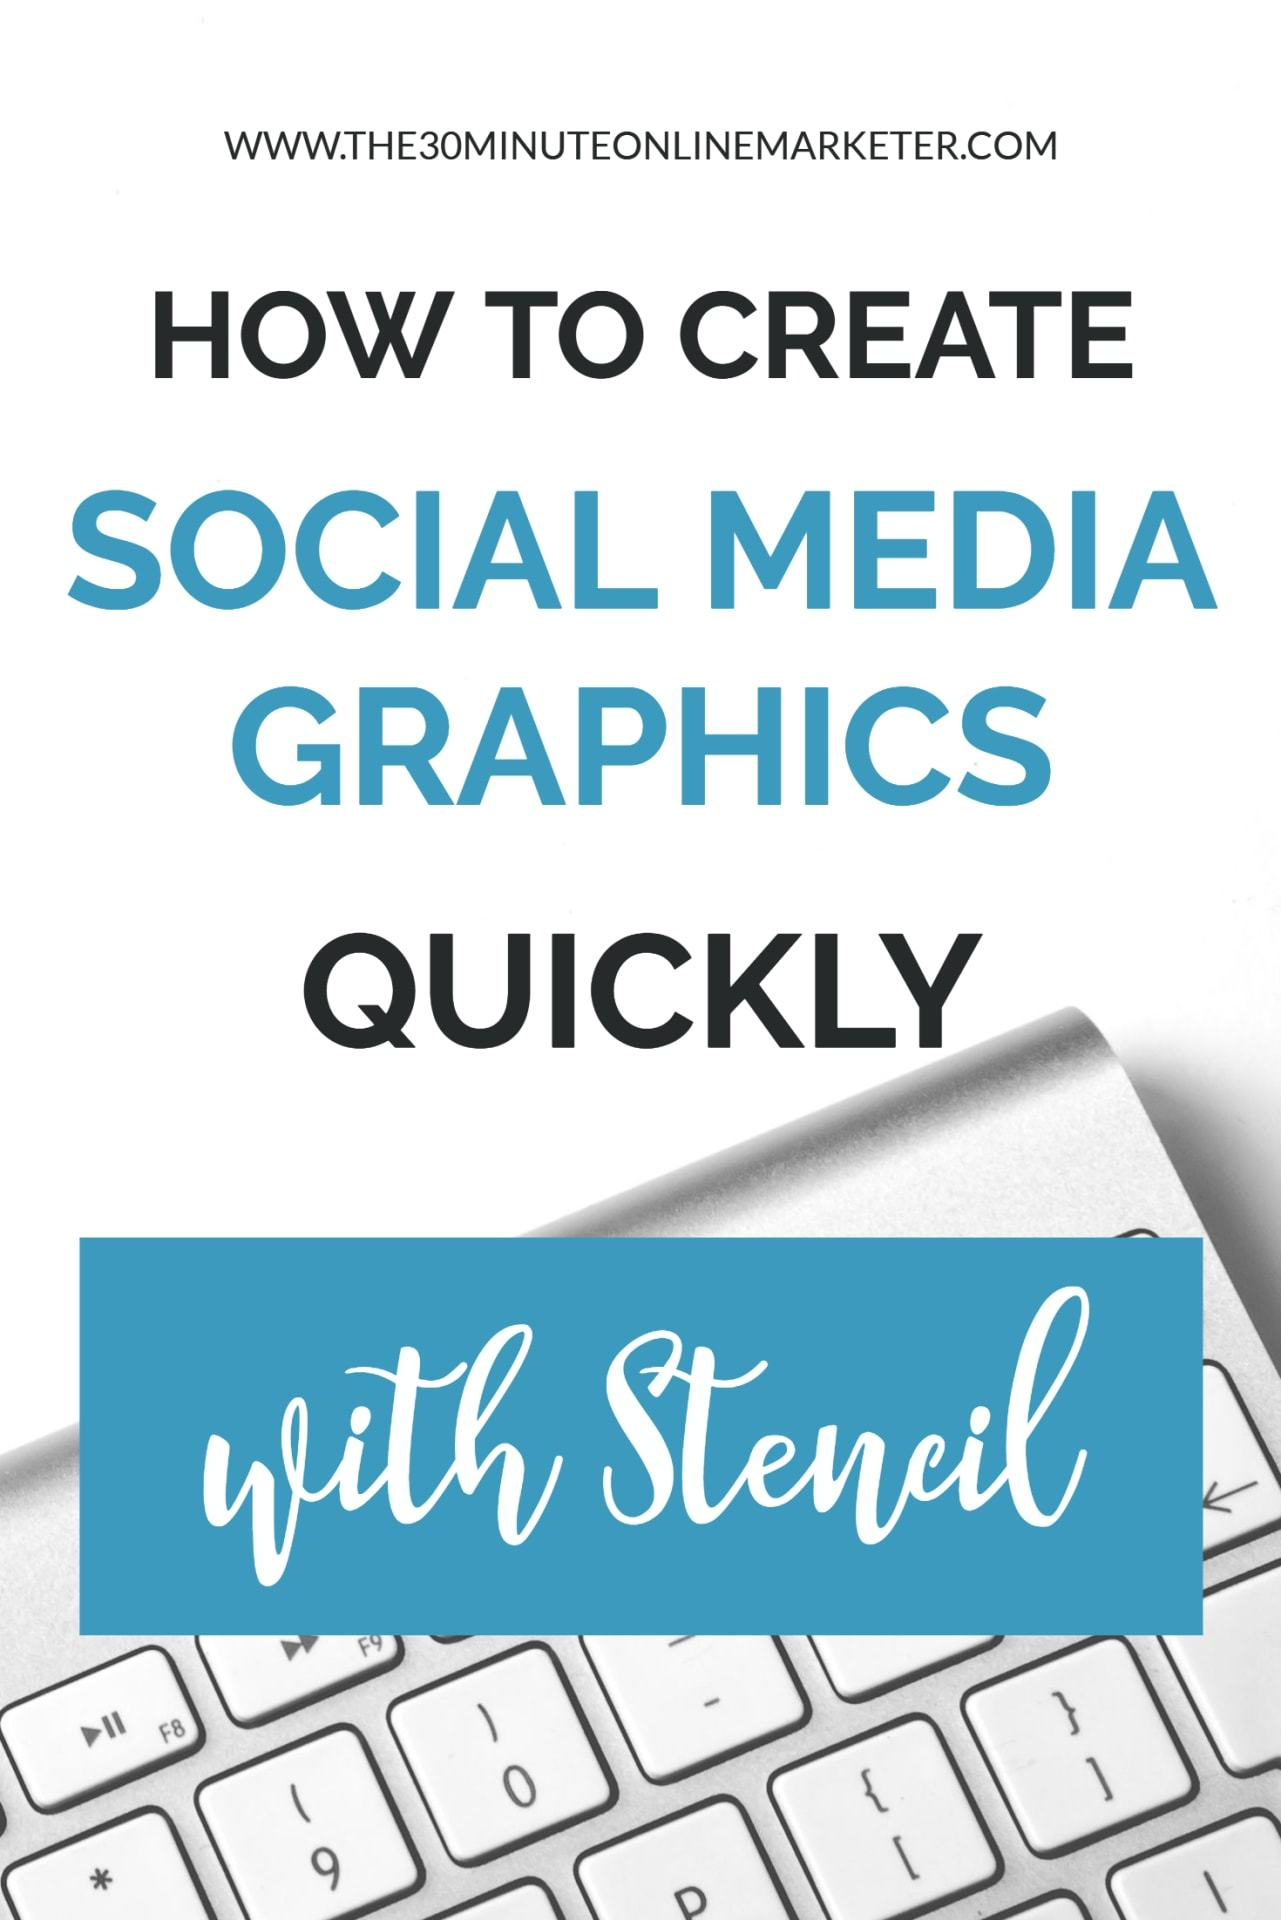 How to create social media graphics quickly with stencil